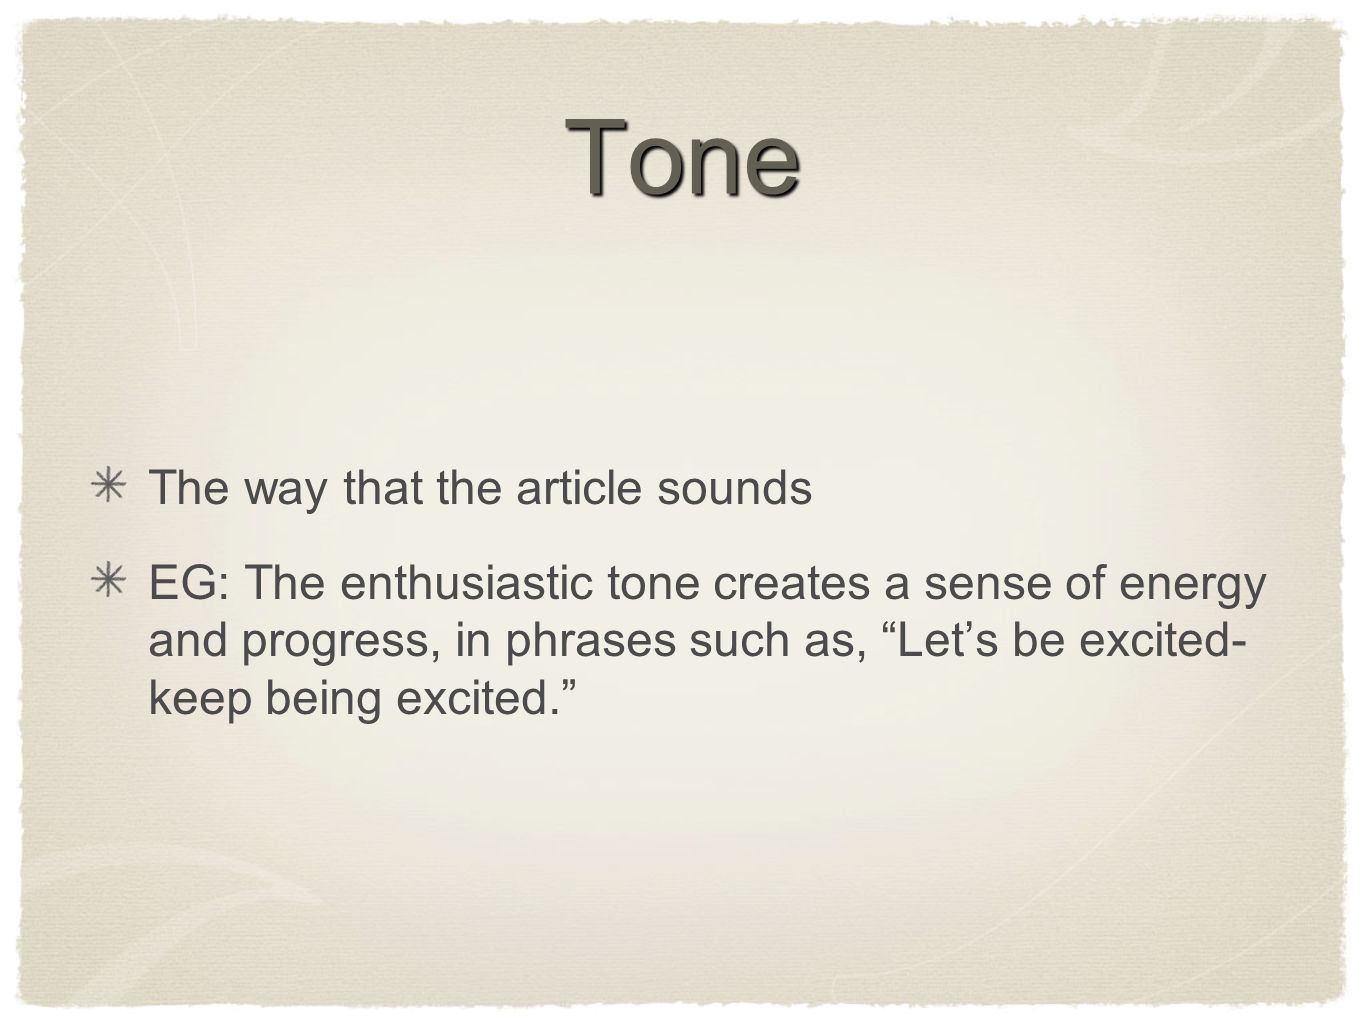 What tone would a persuasive piece have?